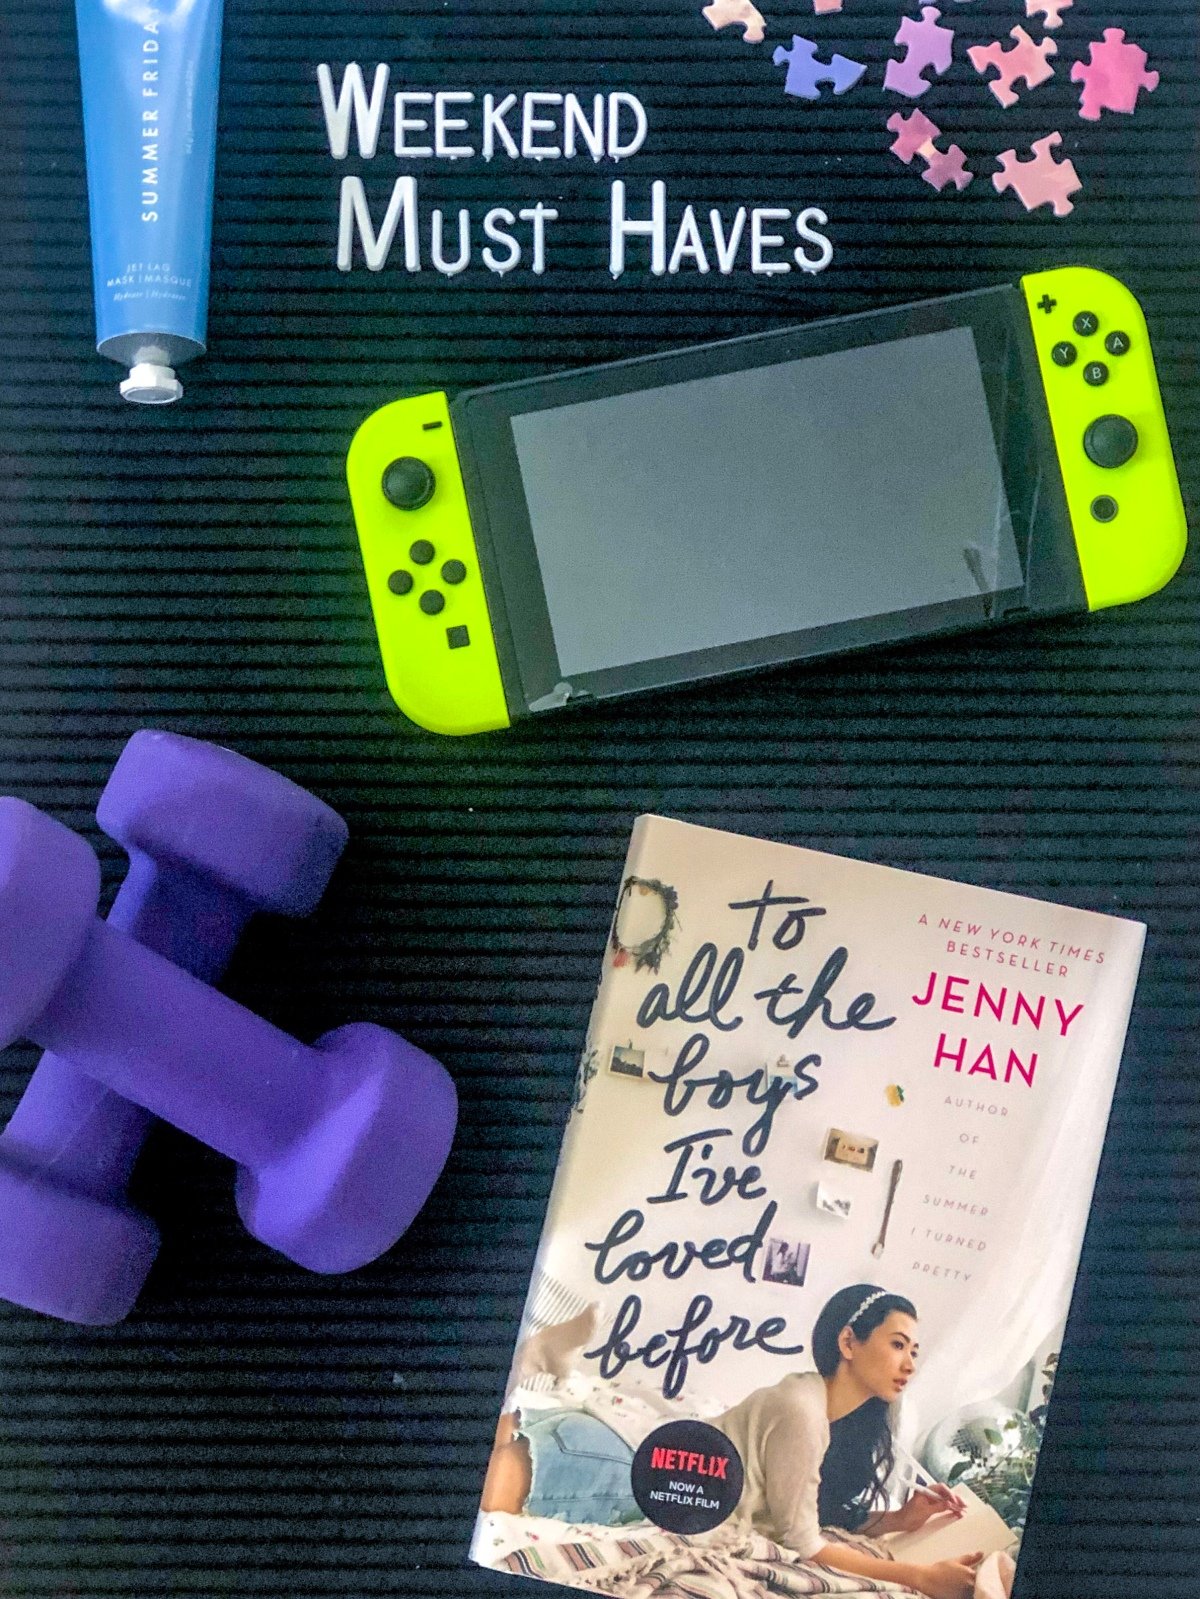 Weekend Must haves when your Fiancee Loves a Videogame